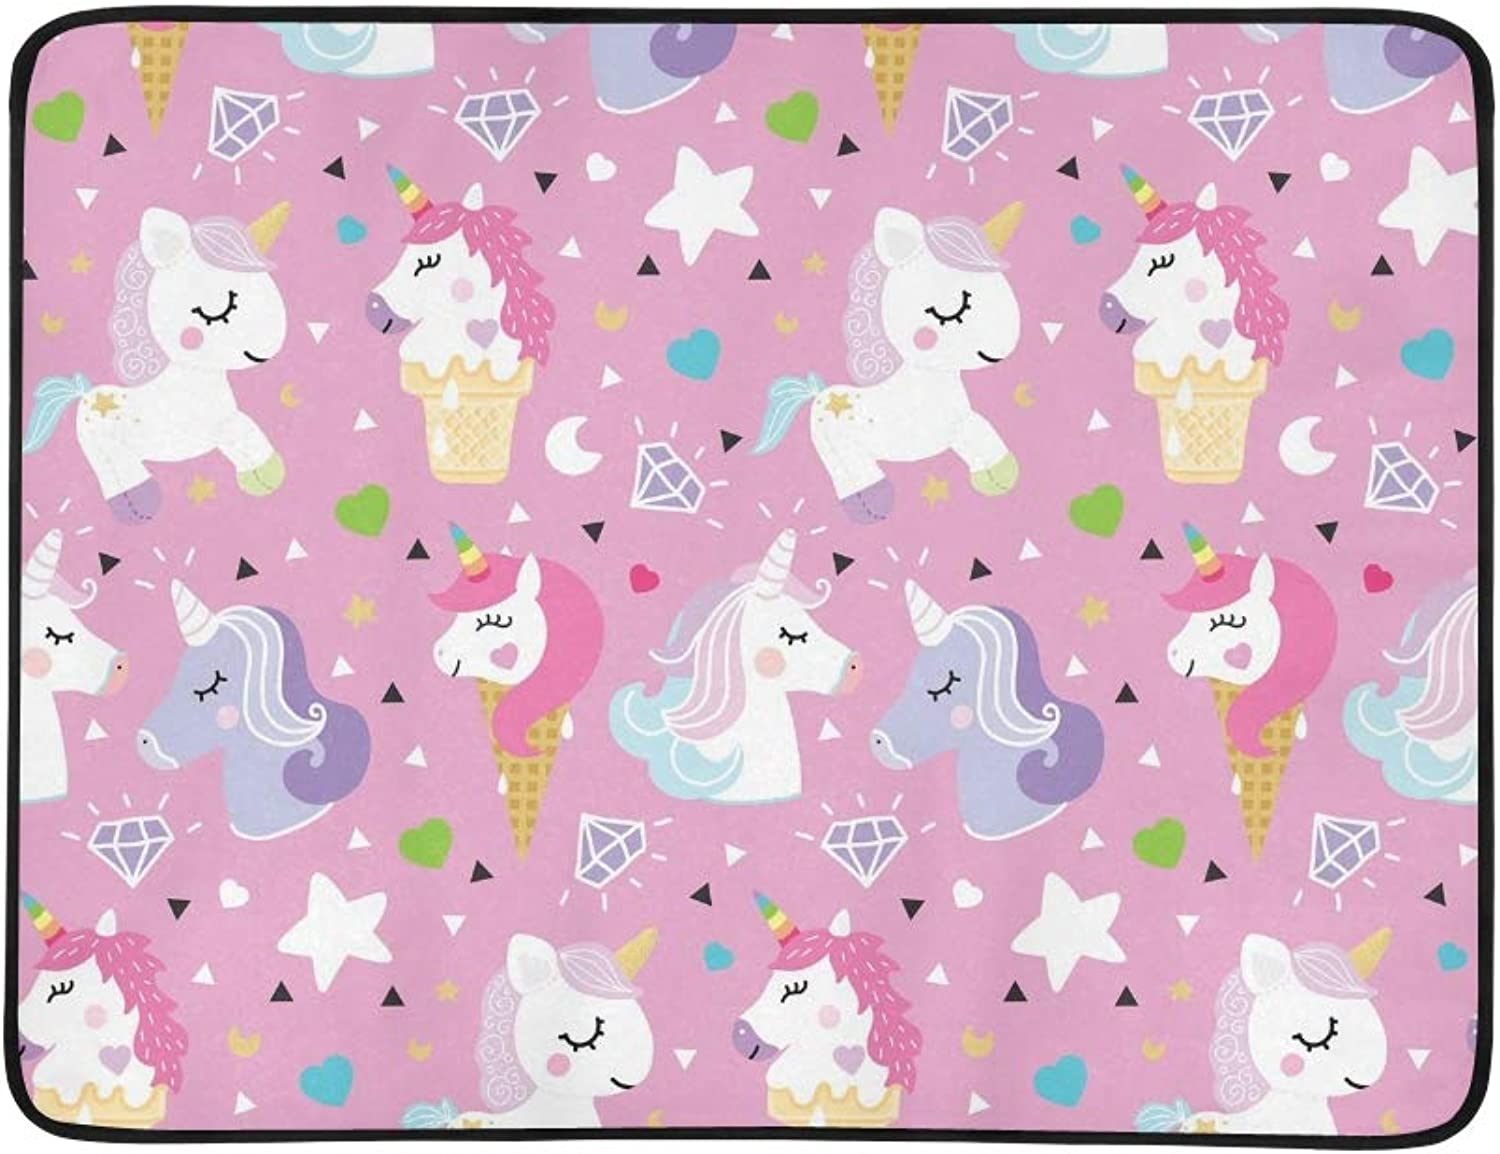 Unicorn Pony Ice Cream Triangle Portable and Foldable Blanket Mat 60x78 Inch Handy Mat for Camping Picnic Beach Indoor Outdoor Travel